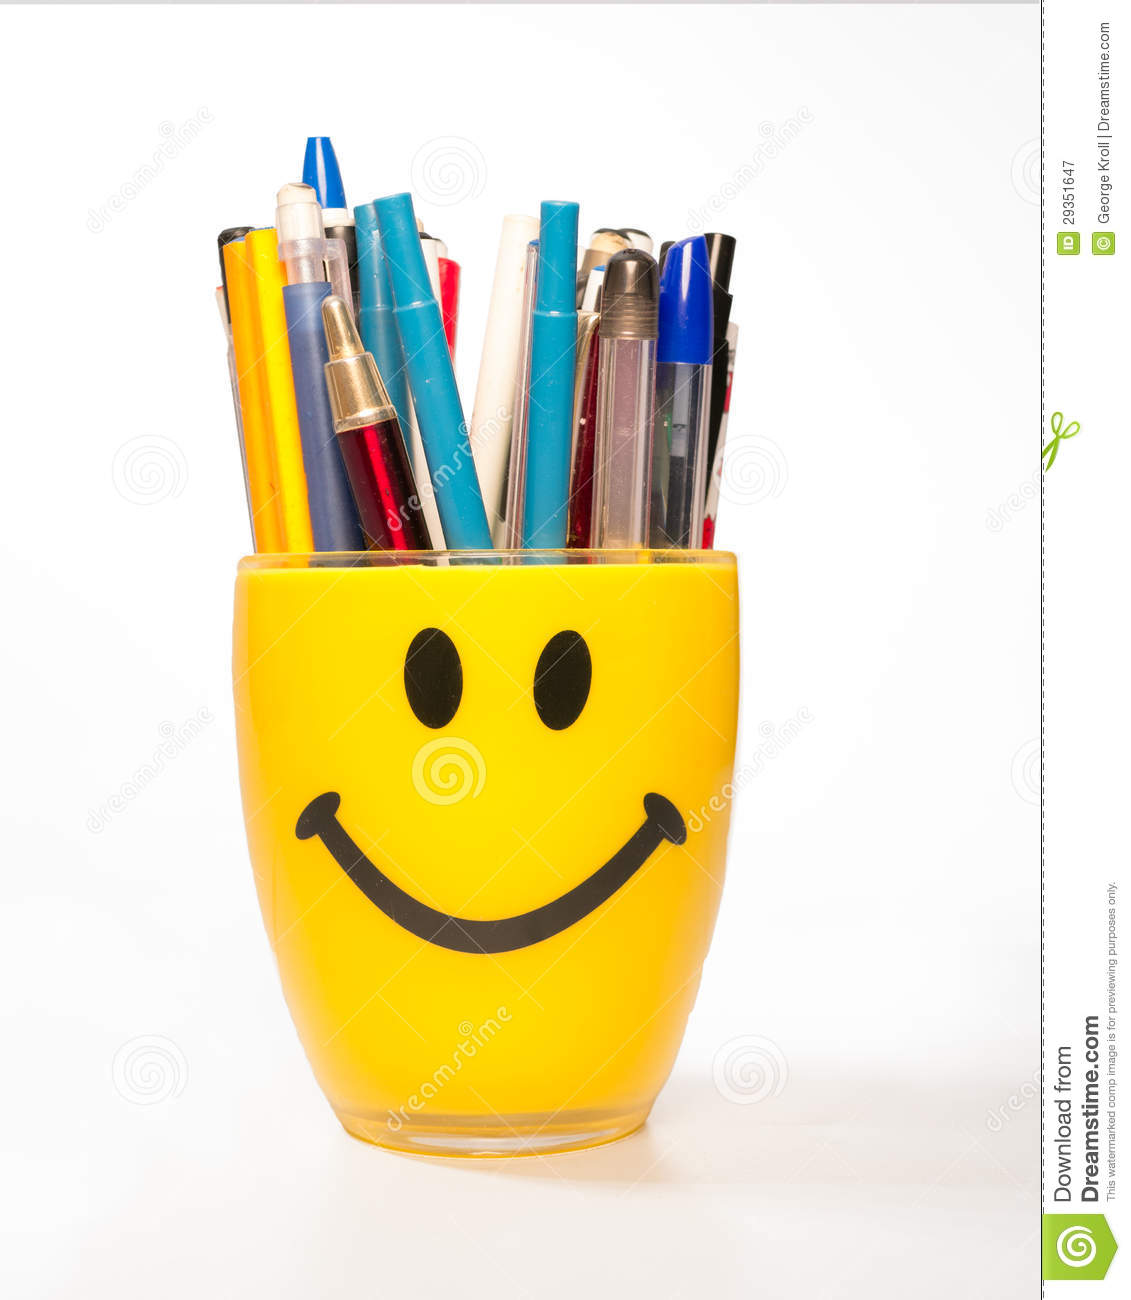 Pen Cup Holder Smiley Cup Pen Holder Stock Image Image Of Holder